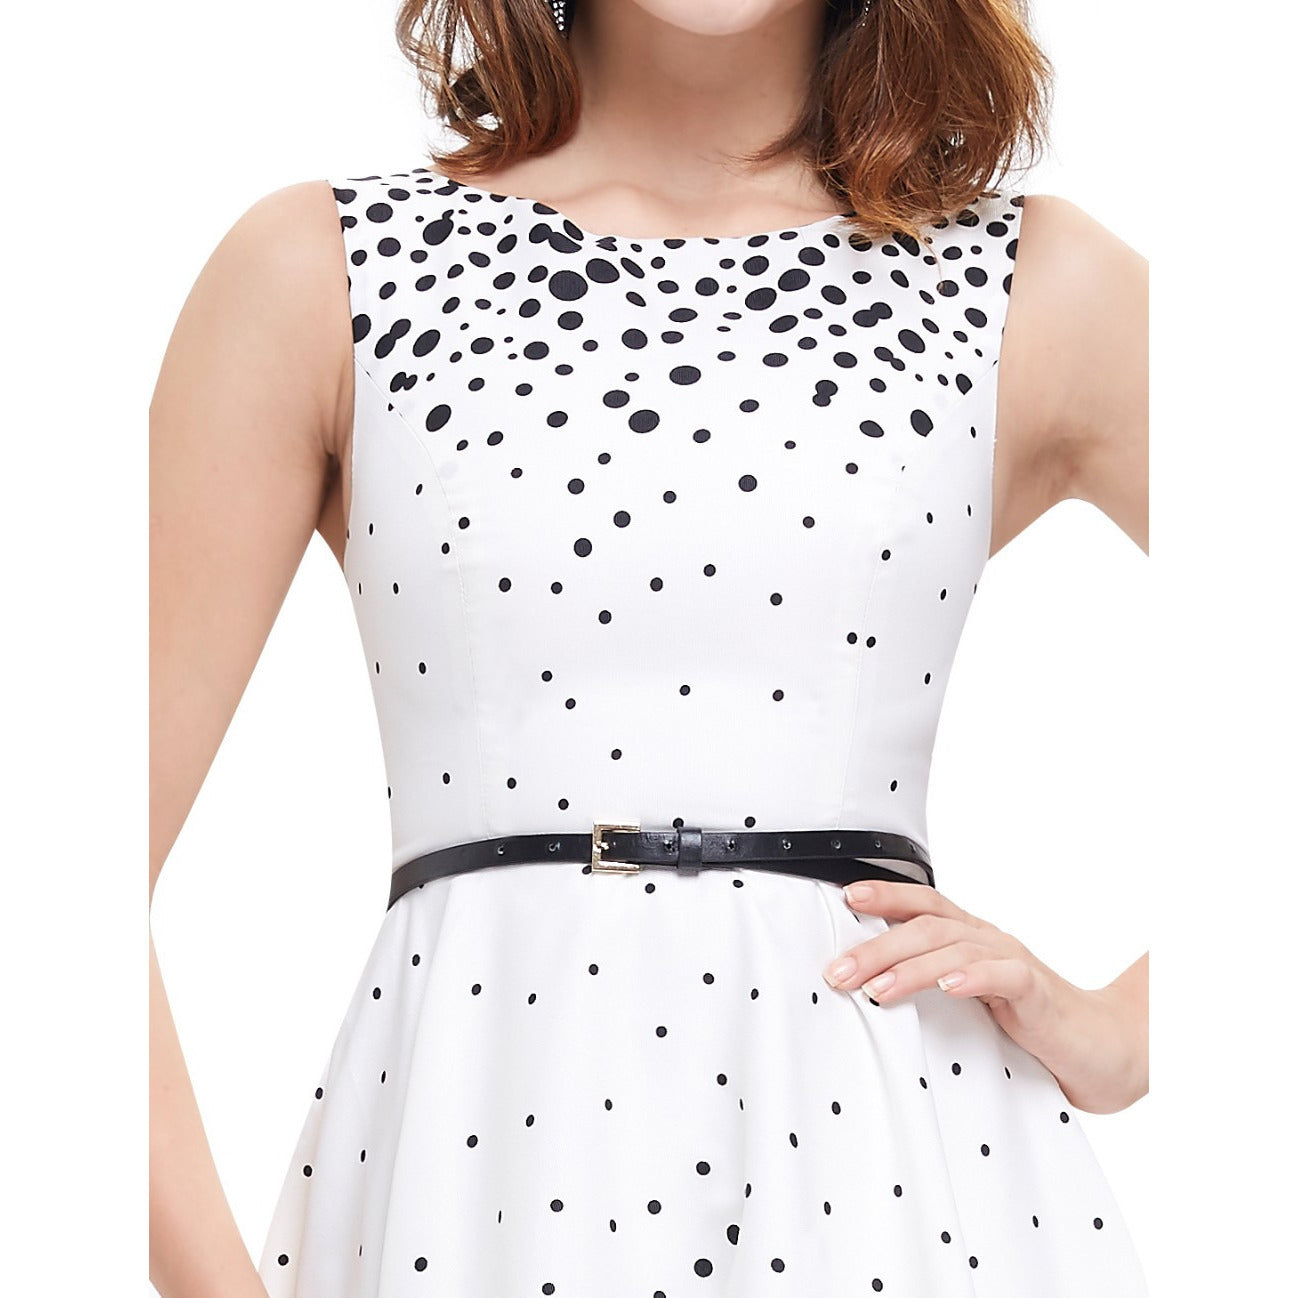 Women's Polka Dot Party Dress - Indifashion.org